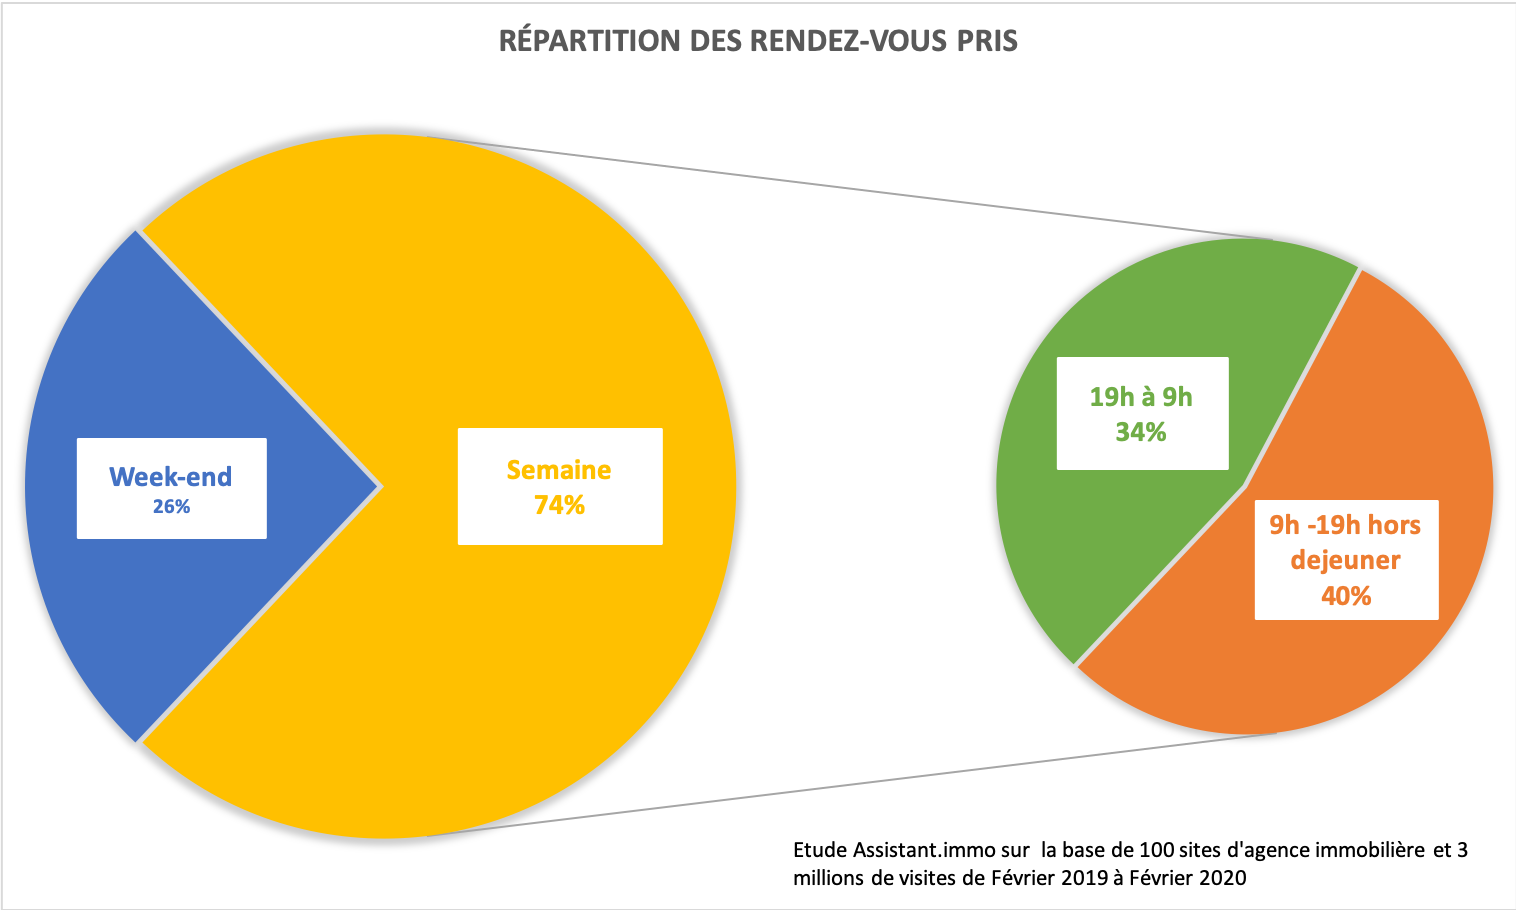 repartion pris de rendez-vous